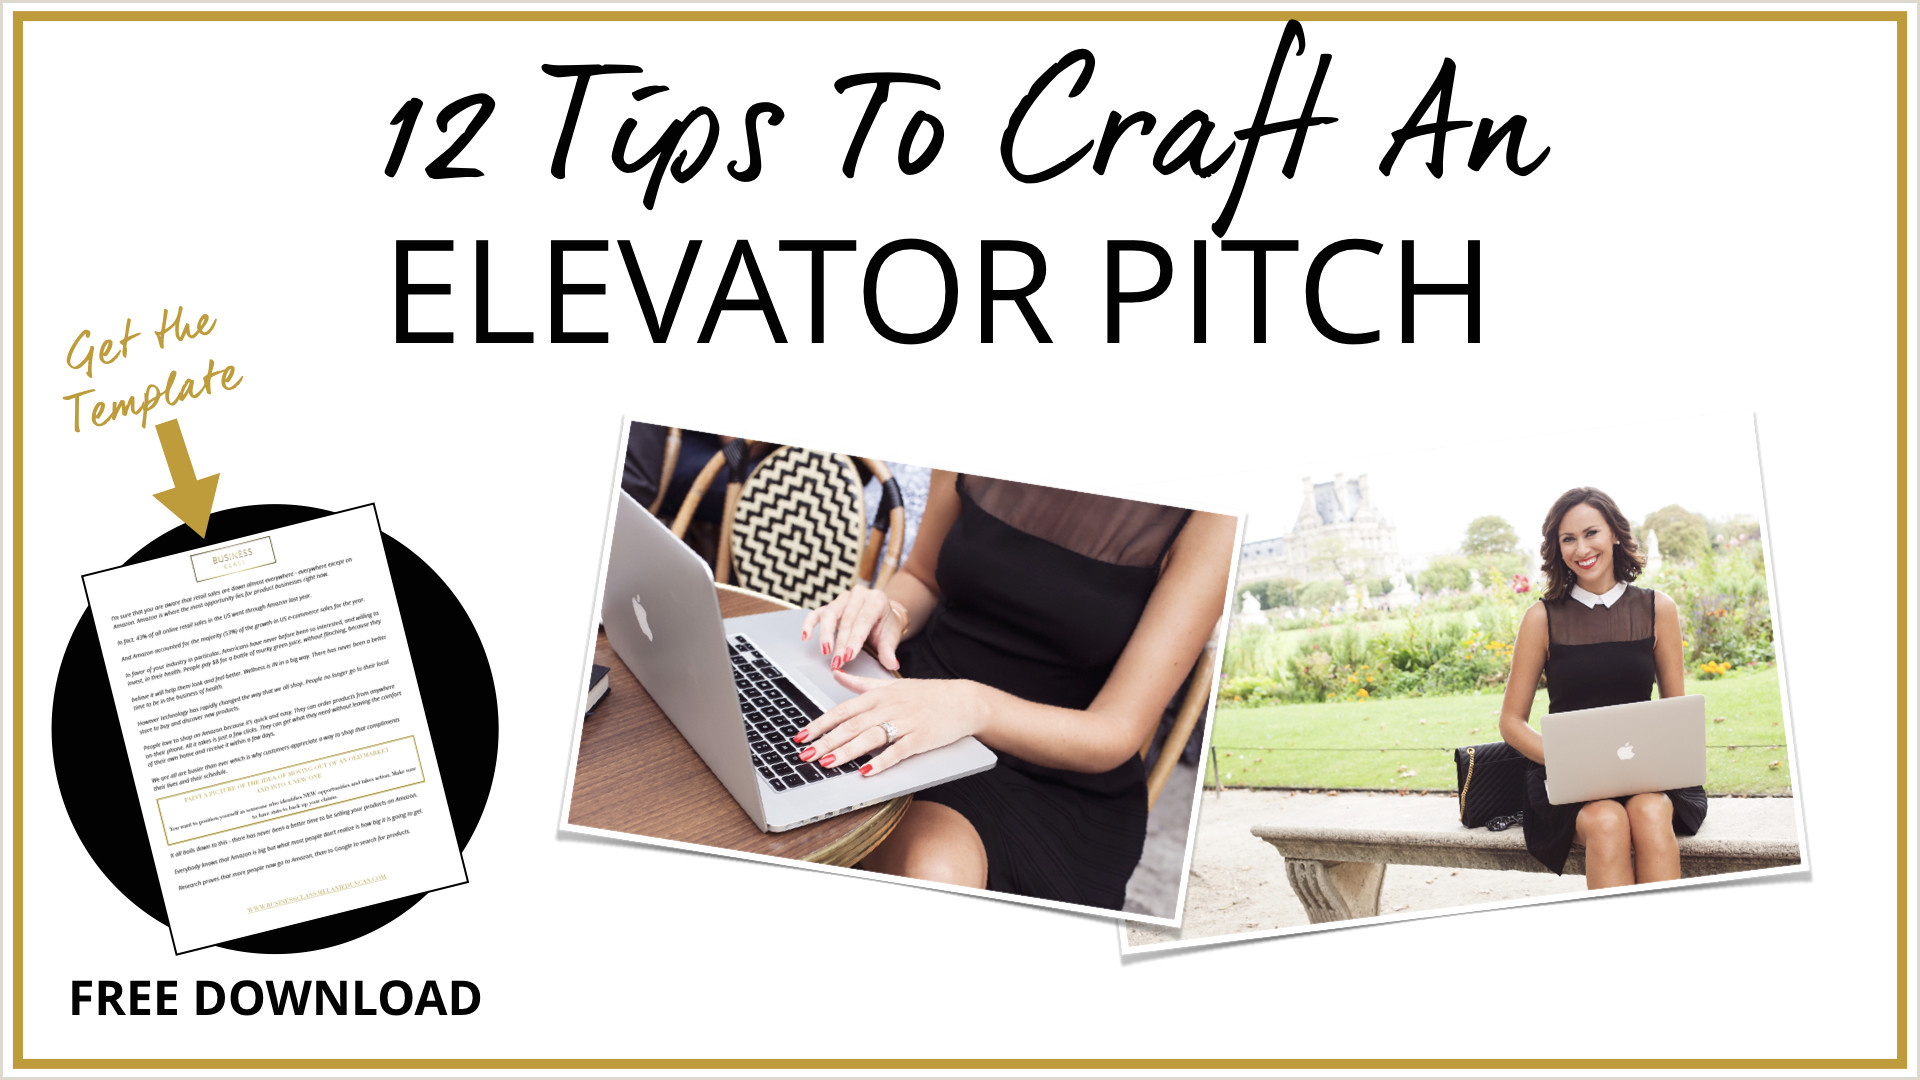 Business Card Ideas For Crafters 12 Tips To Craft An Elevator Pitch That Makes An Impact